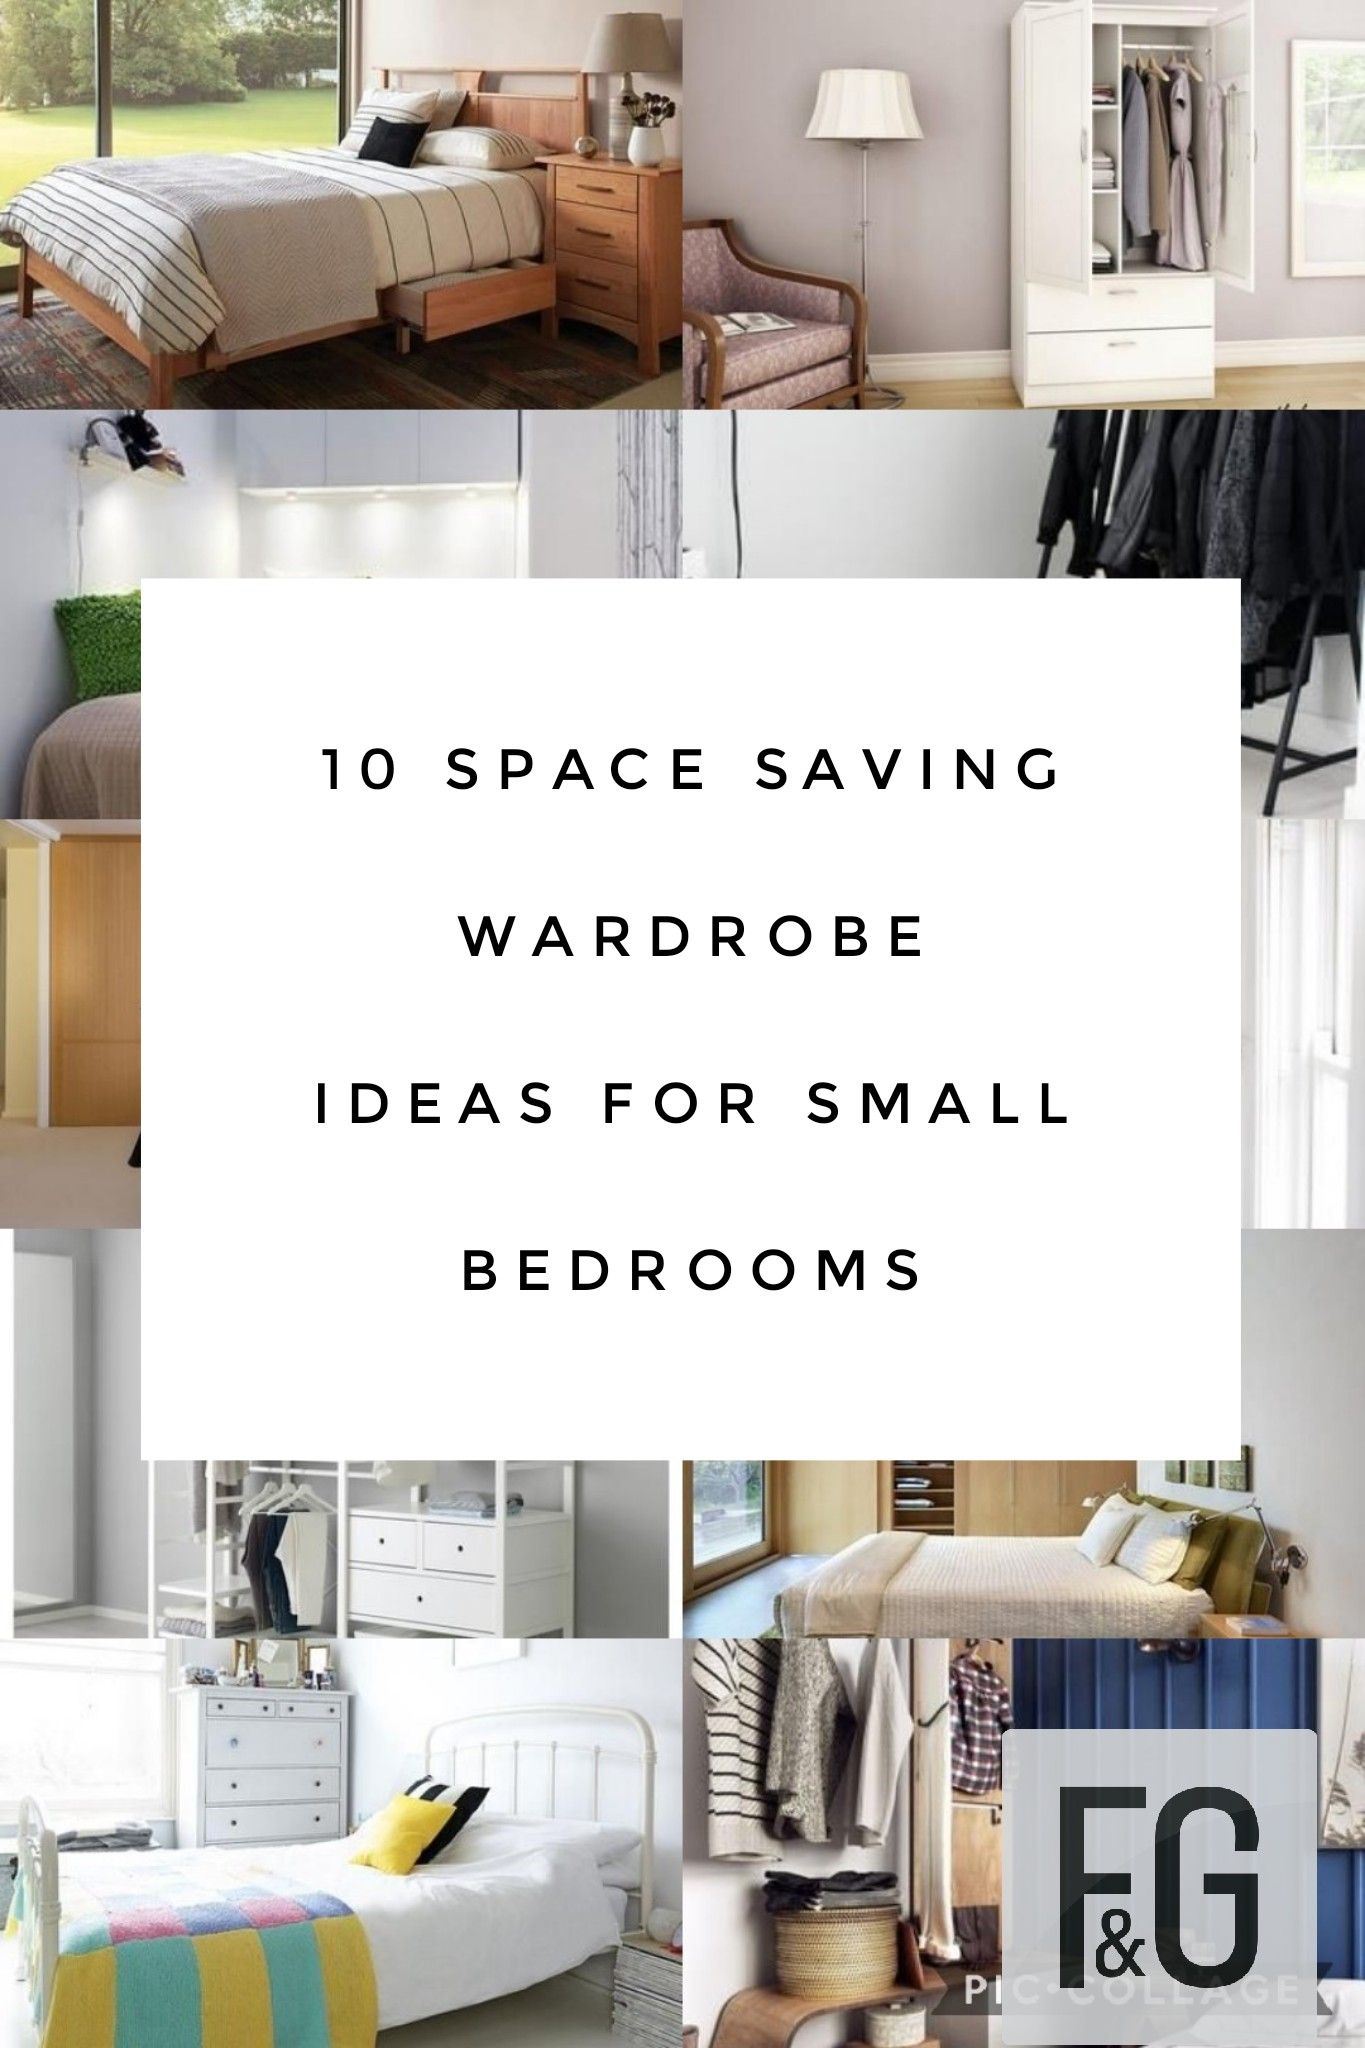 10 Space Saving Wardrobe Ideas For Small Bedrooms Small Room Interior Small Bedroom Wardrobe Small Space Wardrobe Ideas